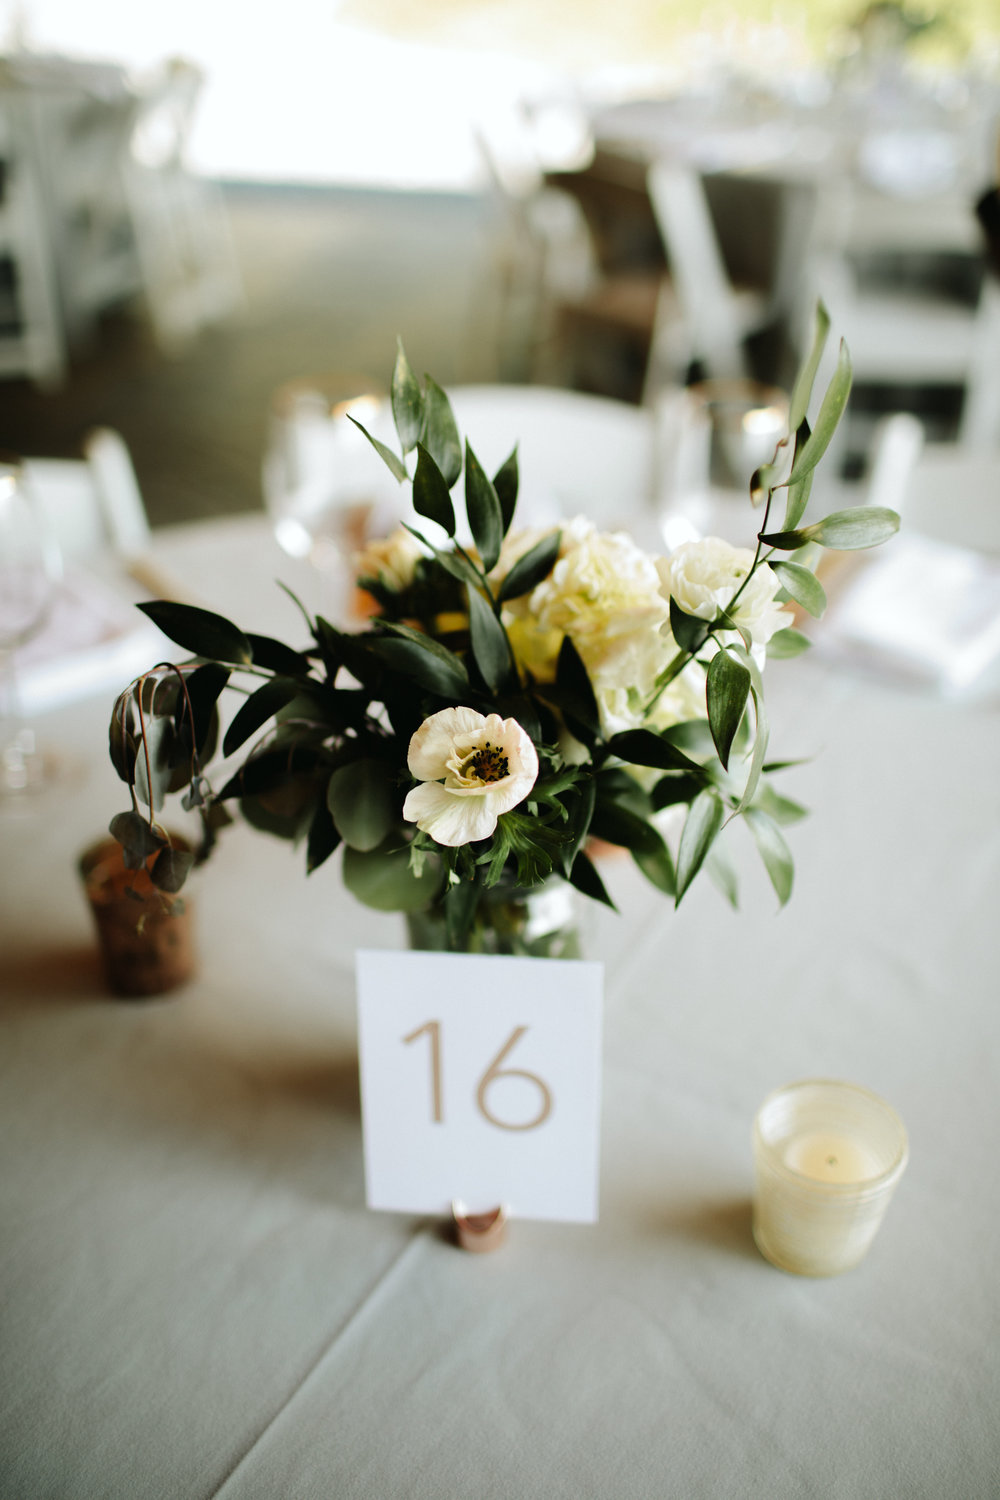 eco-friendly- minimalist-wedding-decor-17.jpg